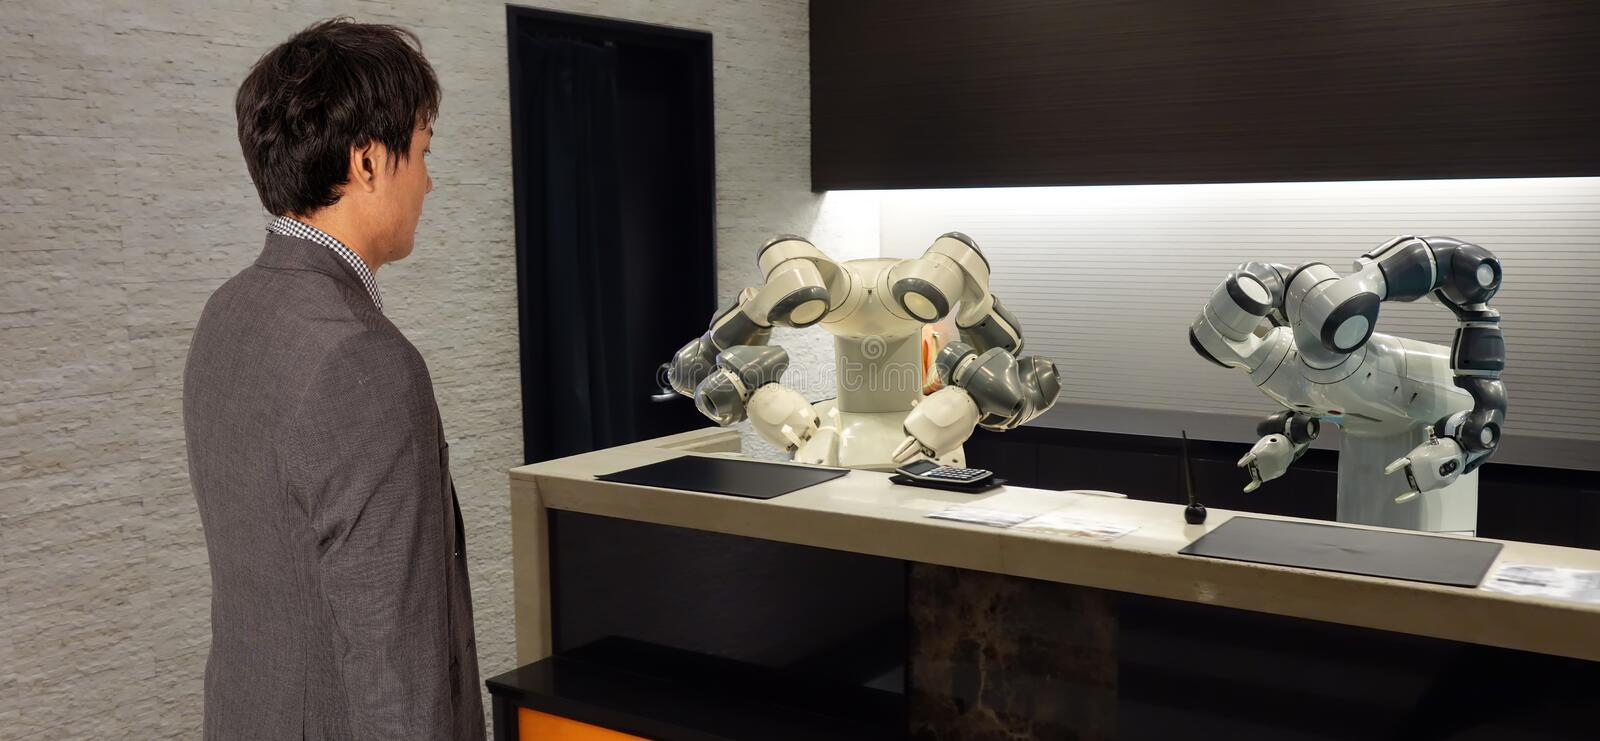 Smart hotel in hospitality industry 4.0 concept, the receptionist robot robot assistant in lobby of hotel or airports always w royalty free stock photo